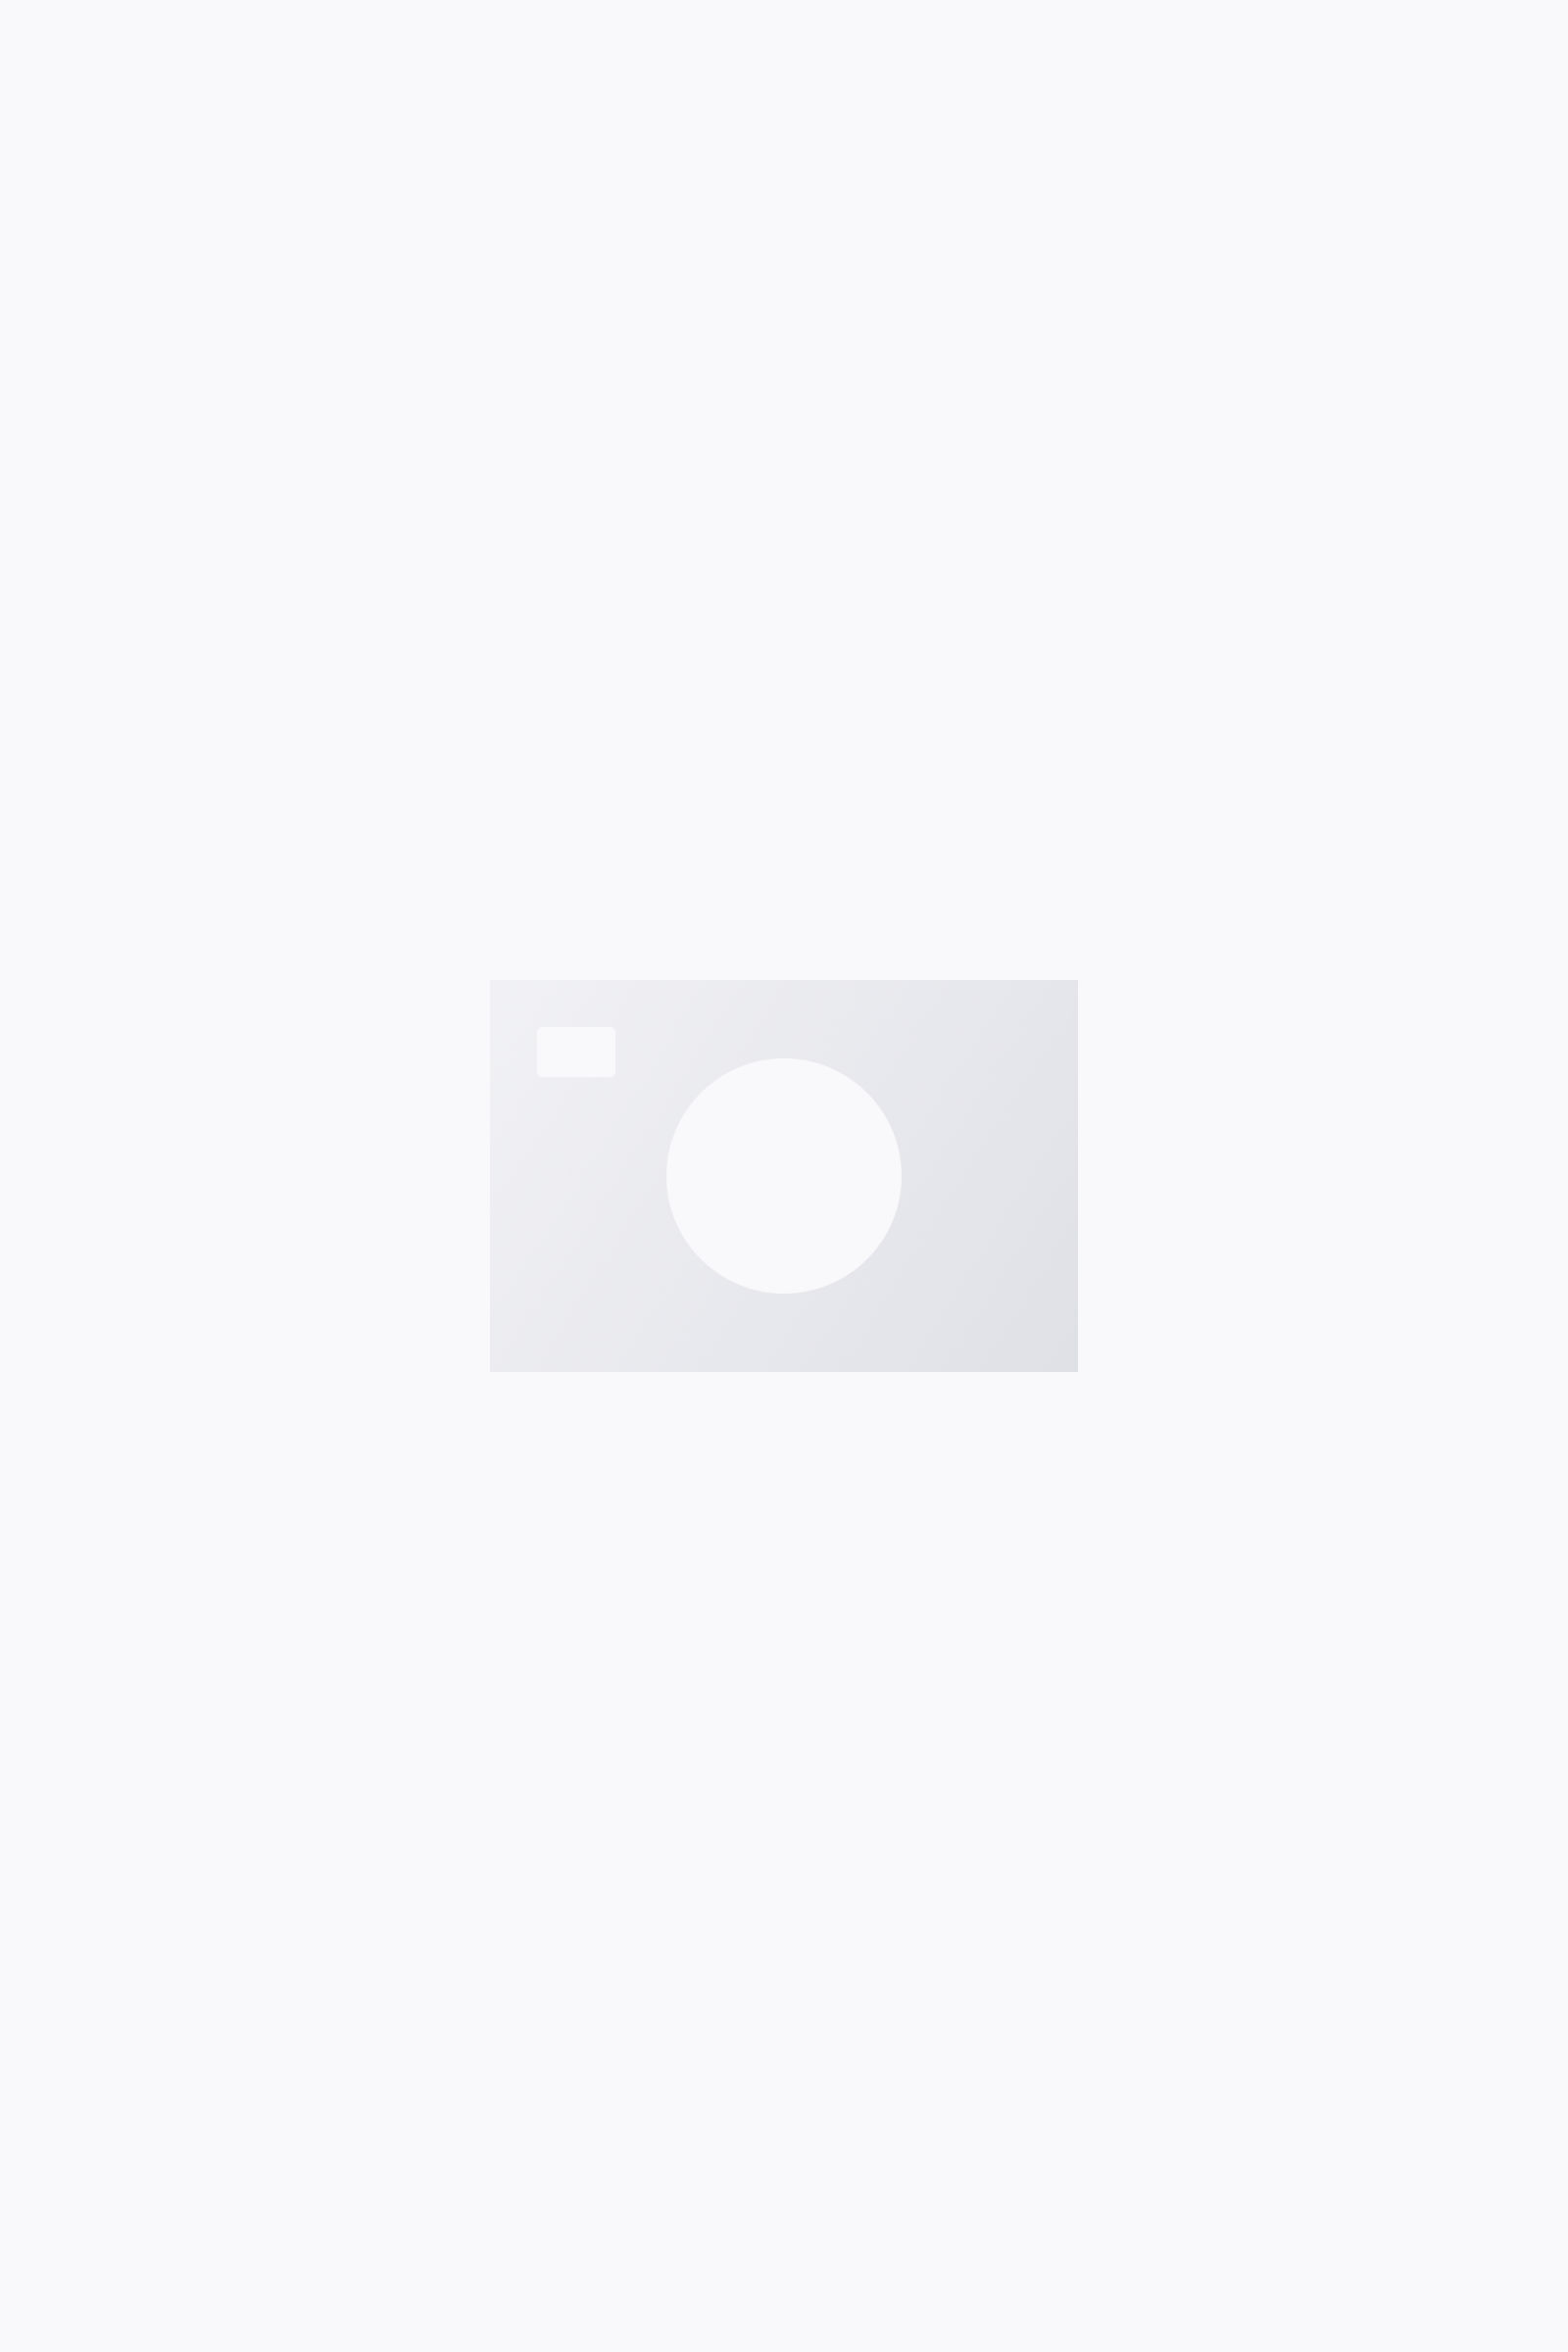 COS TAILORED CYCLING SHORTS,Black